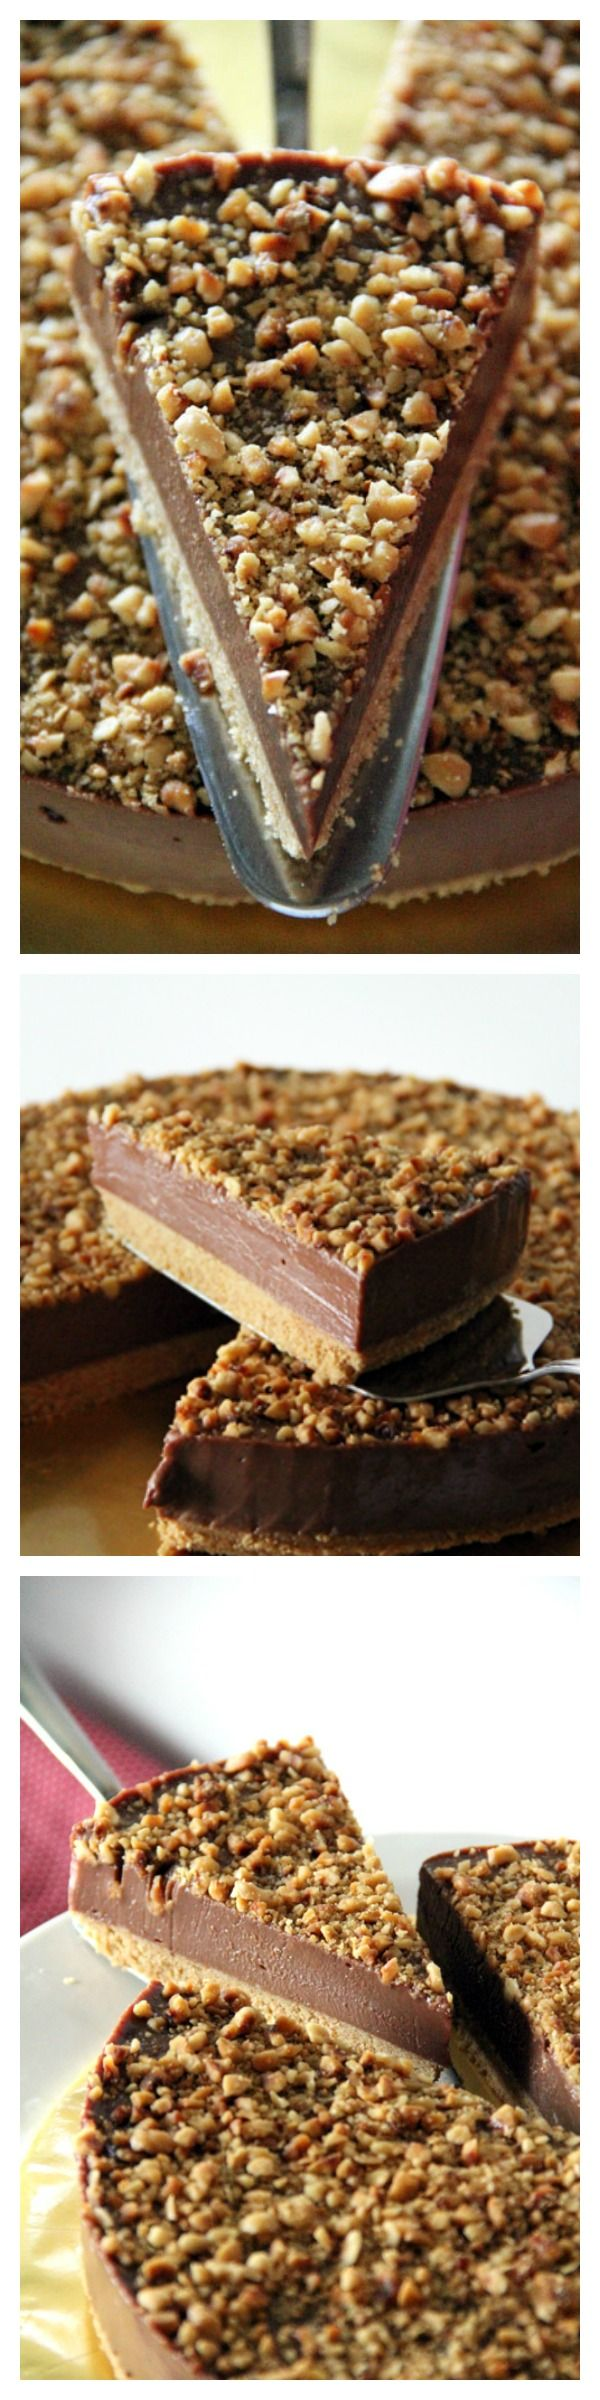 Sinfully rich Nutella Cheesecake with toasted chopped nutella!! This recipe has been shared 120,000 times on Facebook, get the recipe now. Follow pinterest.com/rasamalaysia for more deliciousness!